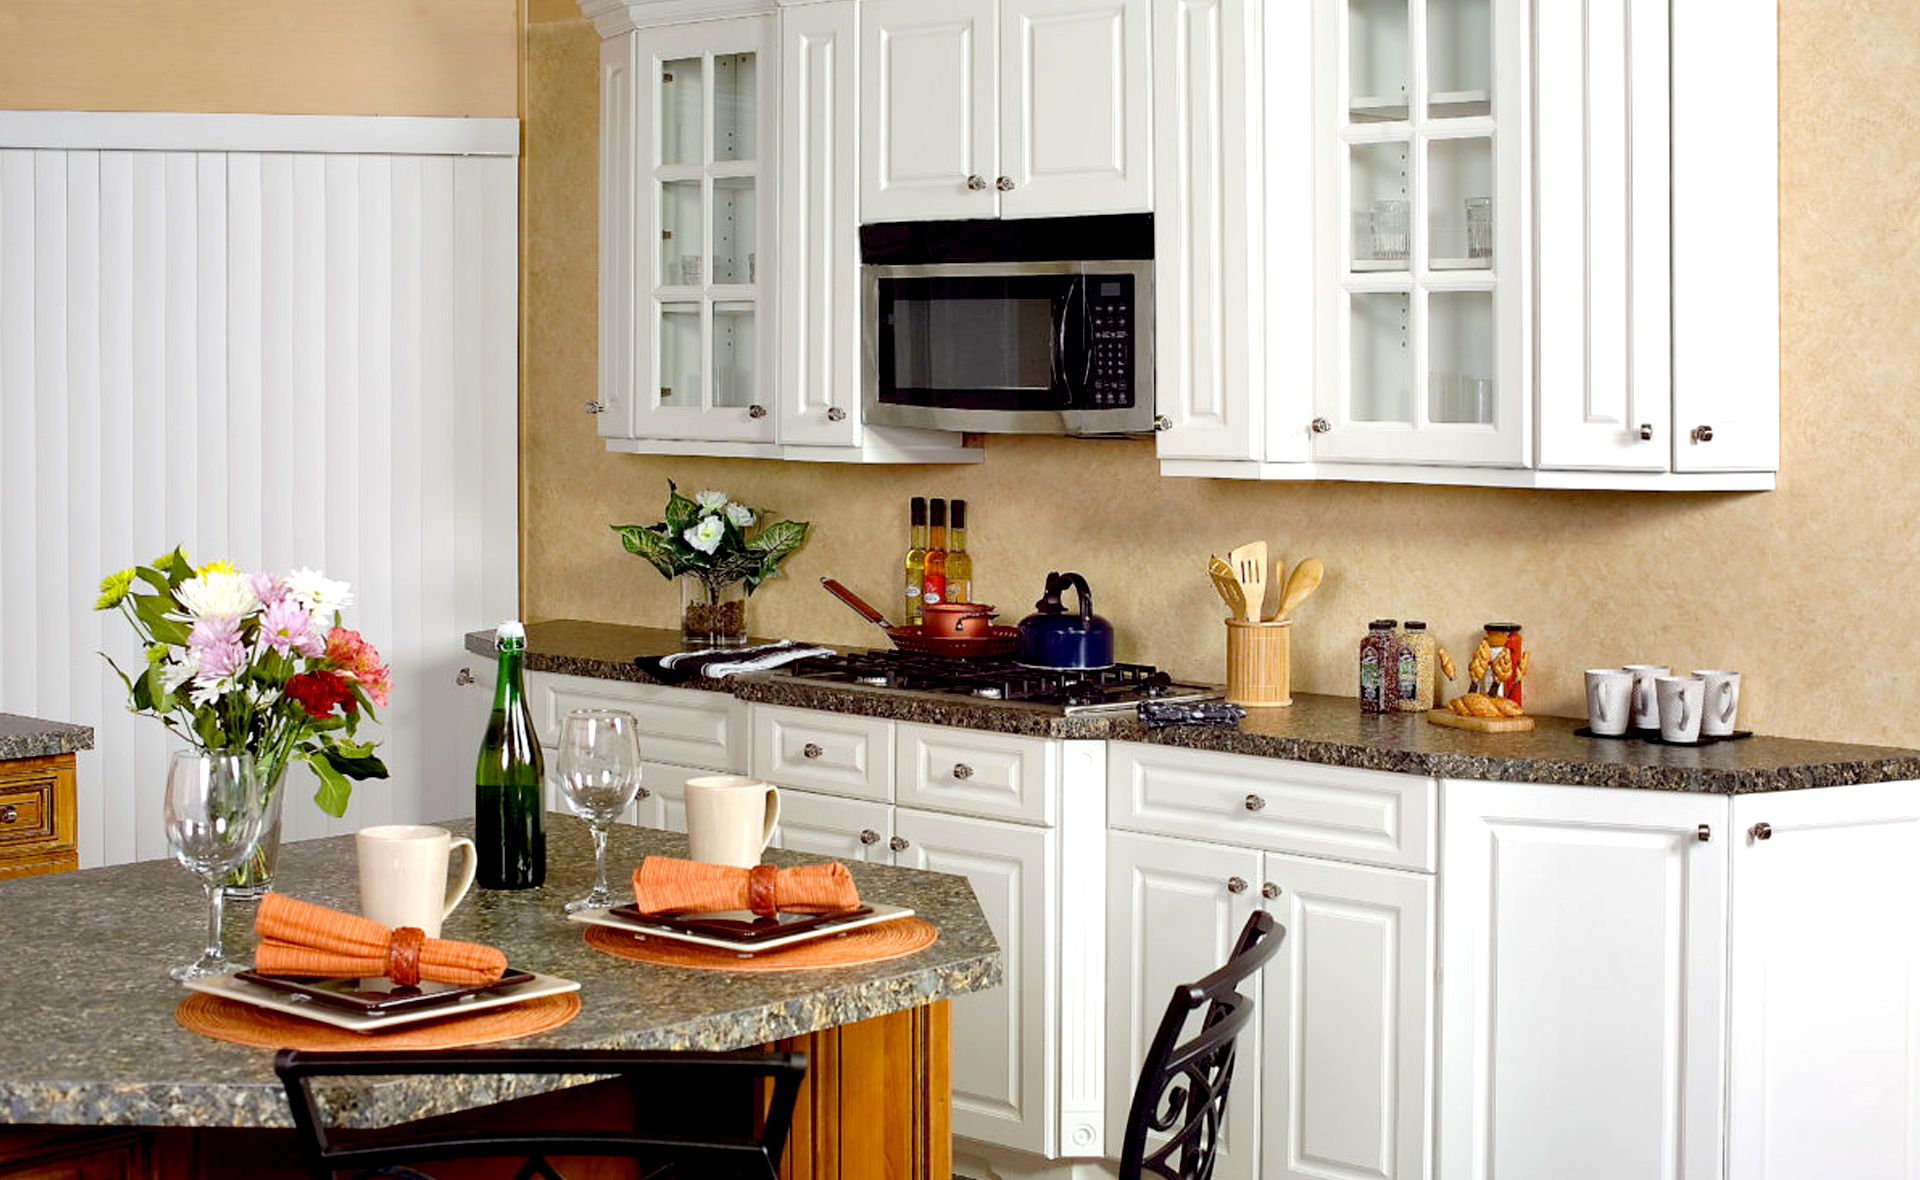 kitchen-renovations-in-essex-county-nj